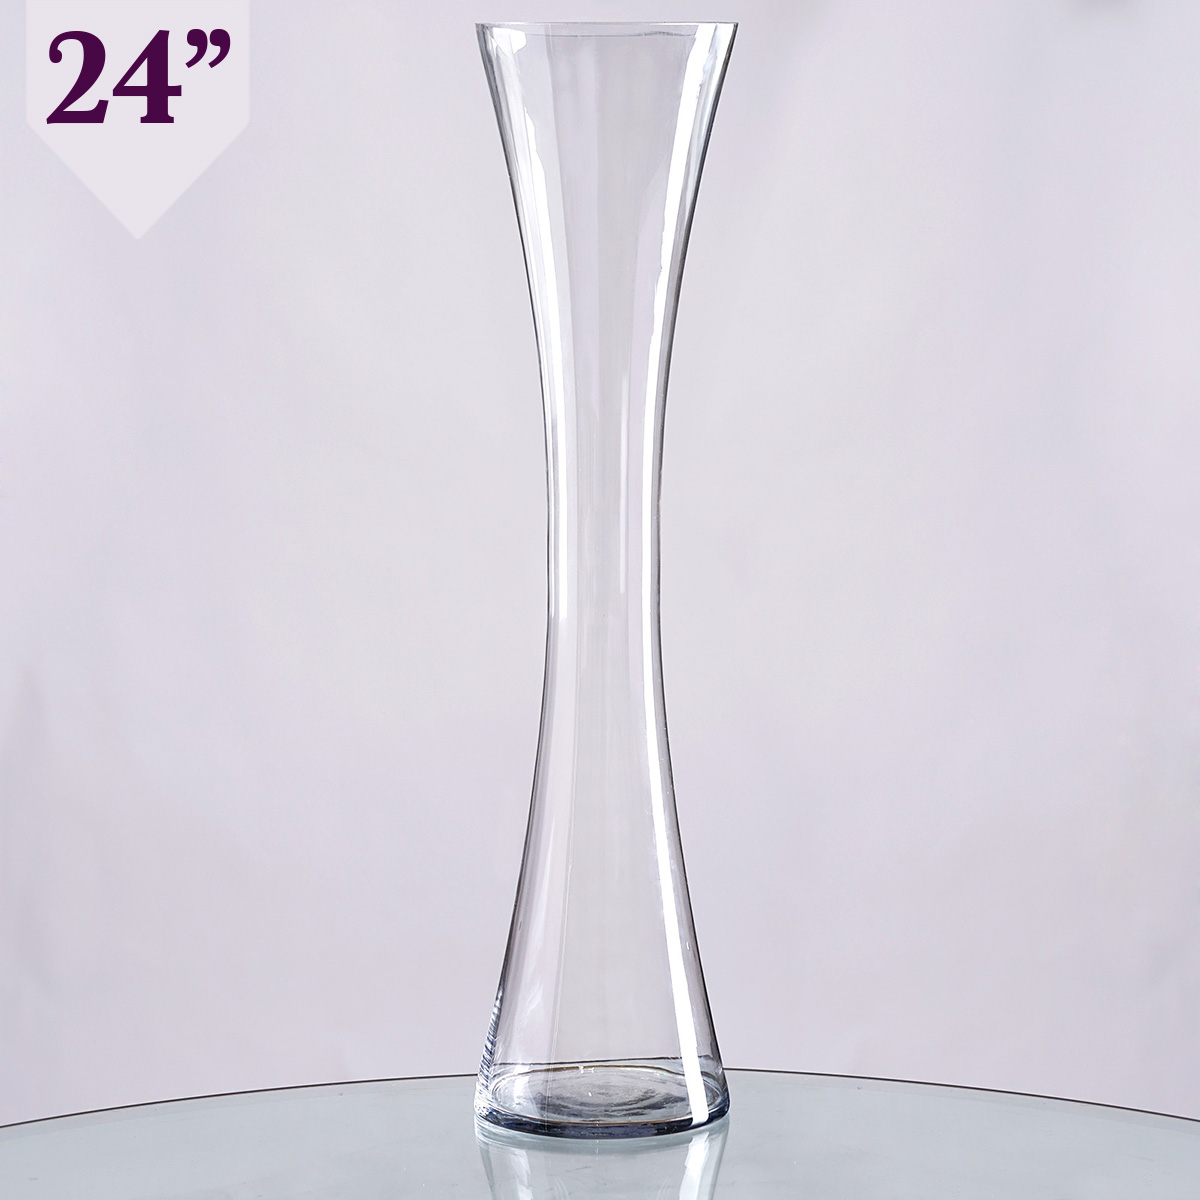 """Wedding Flower Vases Wholesale: 24"""" Tall Hourglass Shaped Clear Glass Vases Wedding Party"""